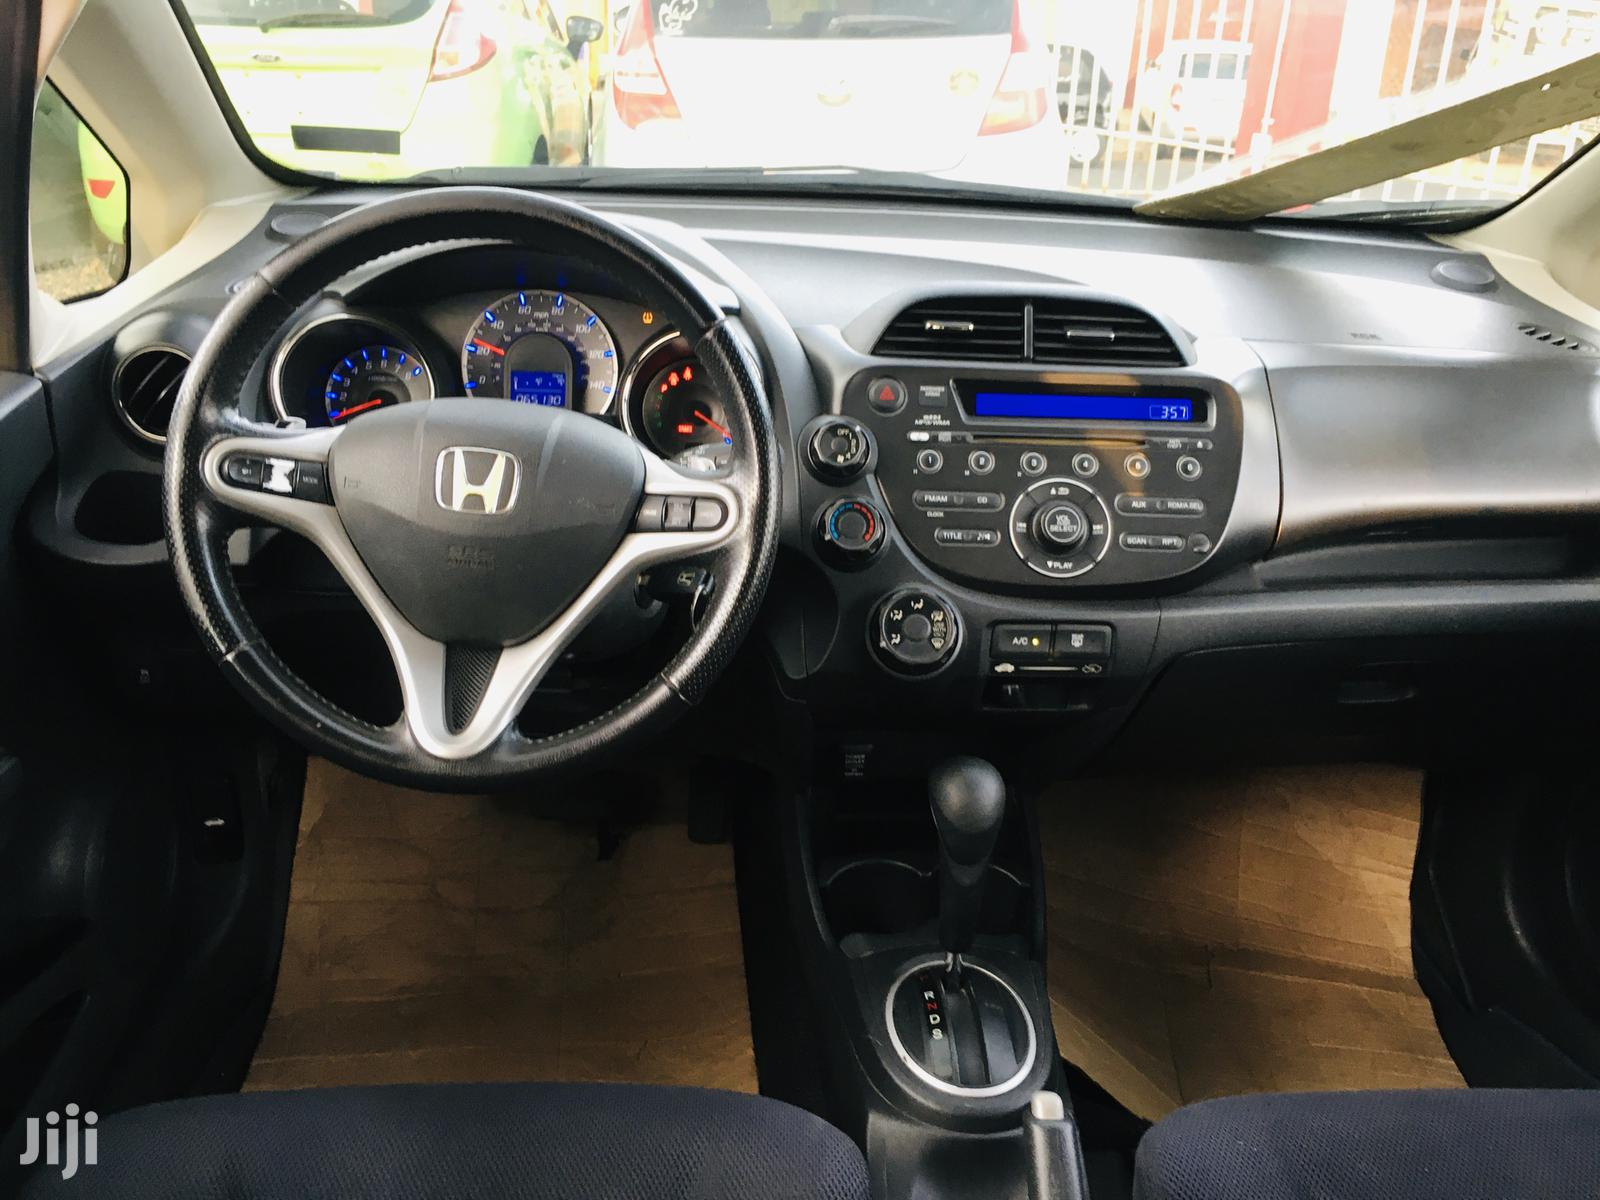 Honda Fit 2013 5D Sport Black   Cars for sale in North Kaneshie, Greater Accra, Ghana